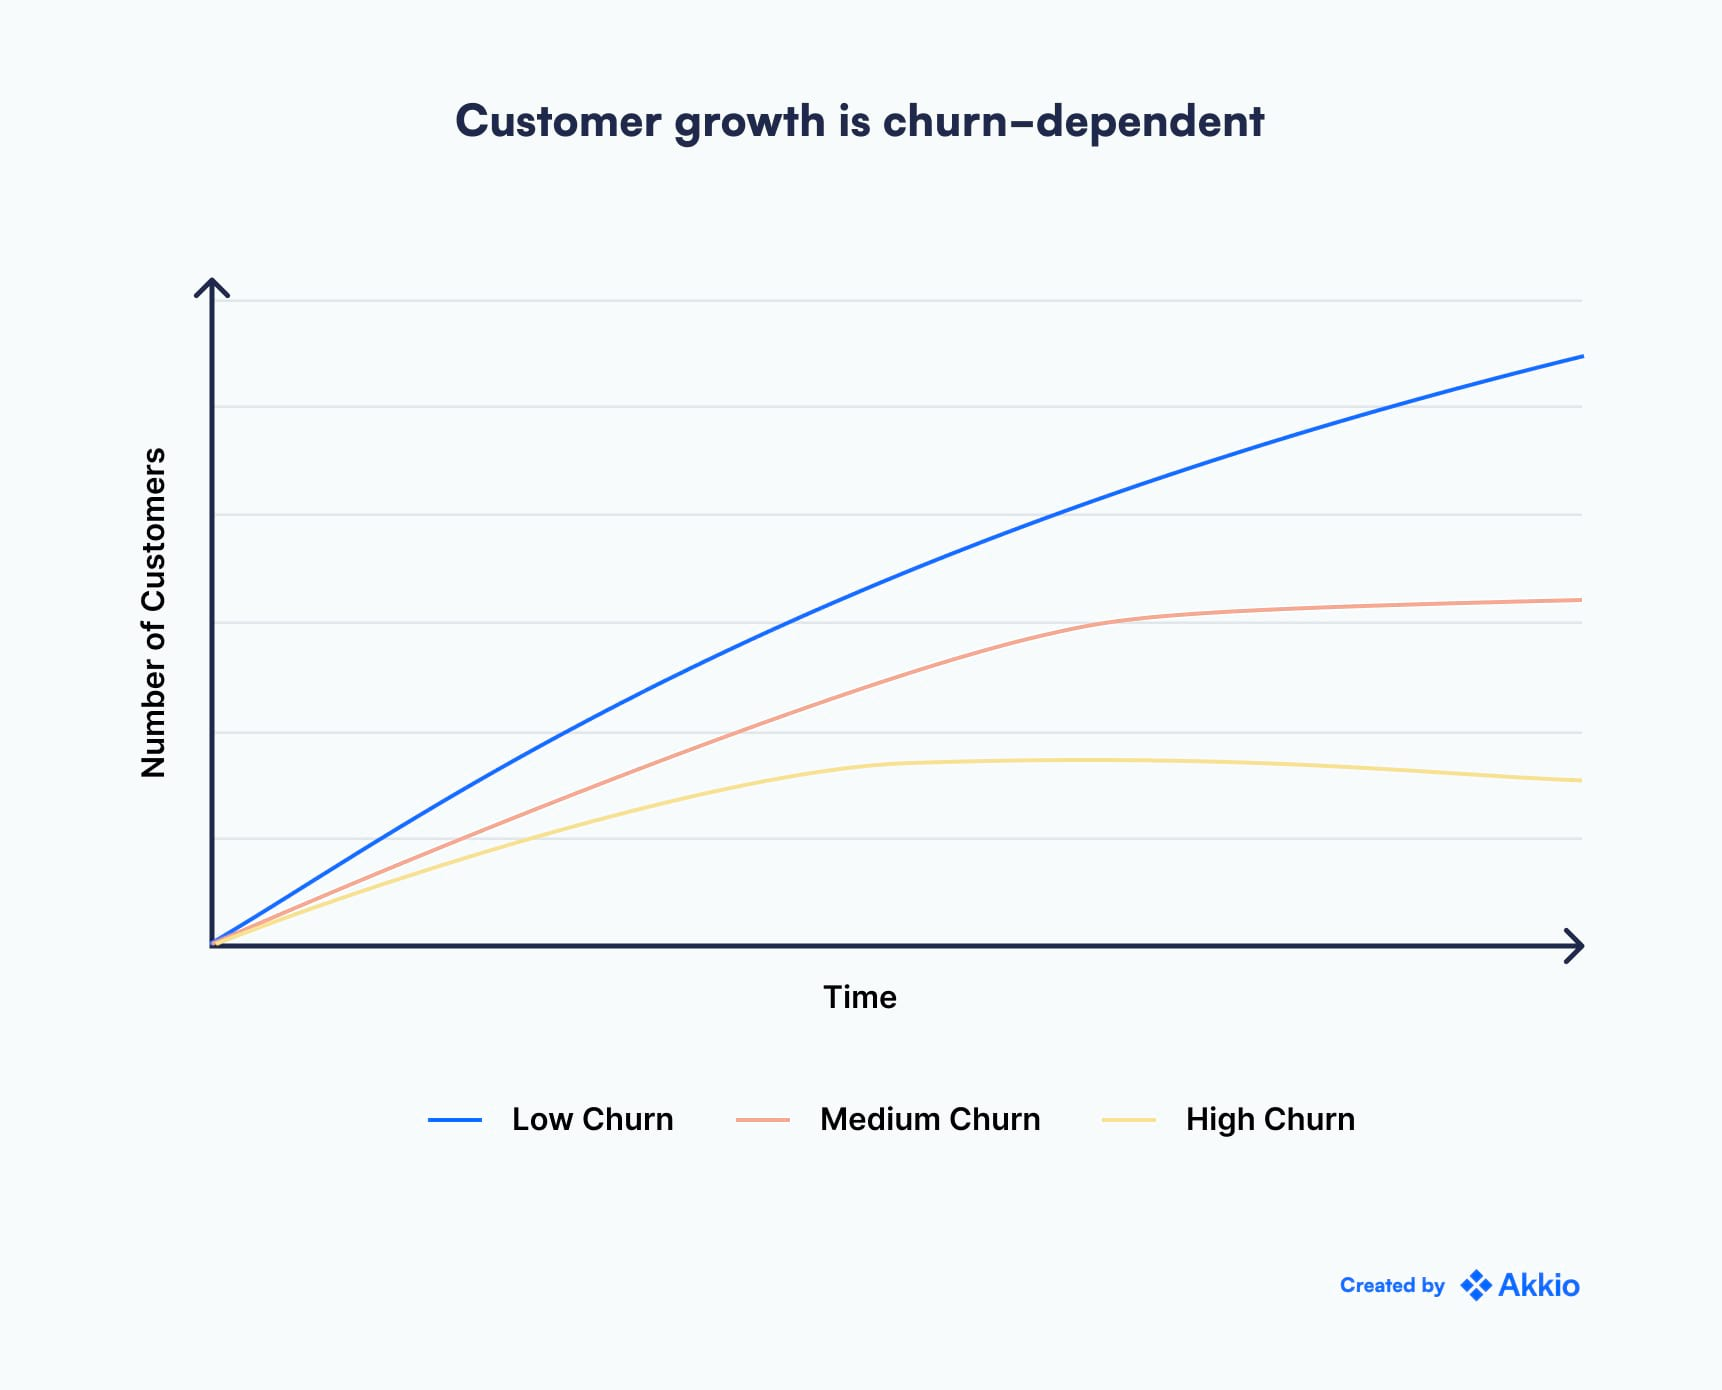 """A graph titled """"customer growth is churn-dependent� depicting a fast customer growth line labeled """"low churn,� a plateauing line labeled """"medium churn,� and a line that decreases labeled """"high churn.�"""